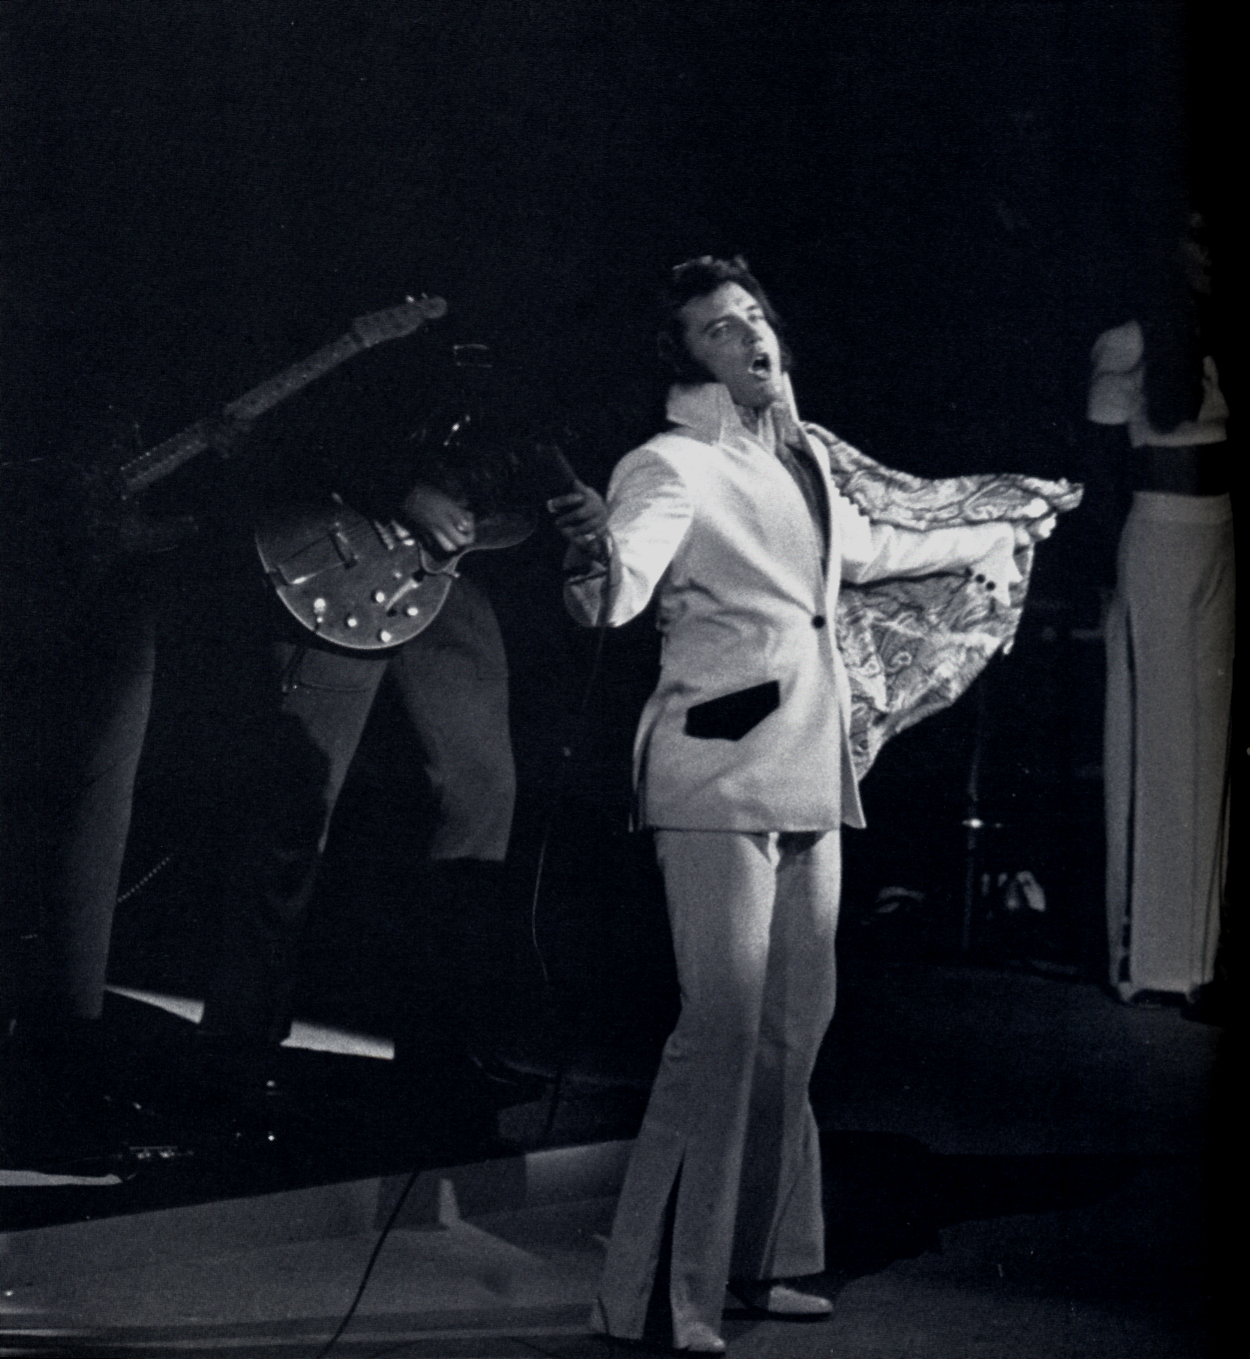 https://i2.wp.com/www.elvisconcerts.com/pictures/s72061711.jpg